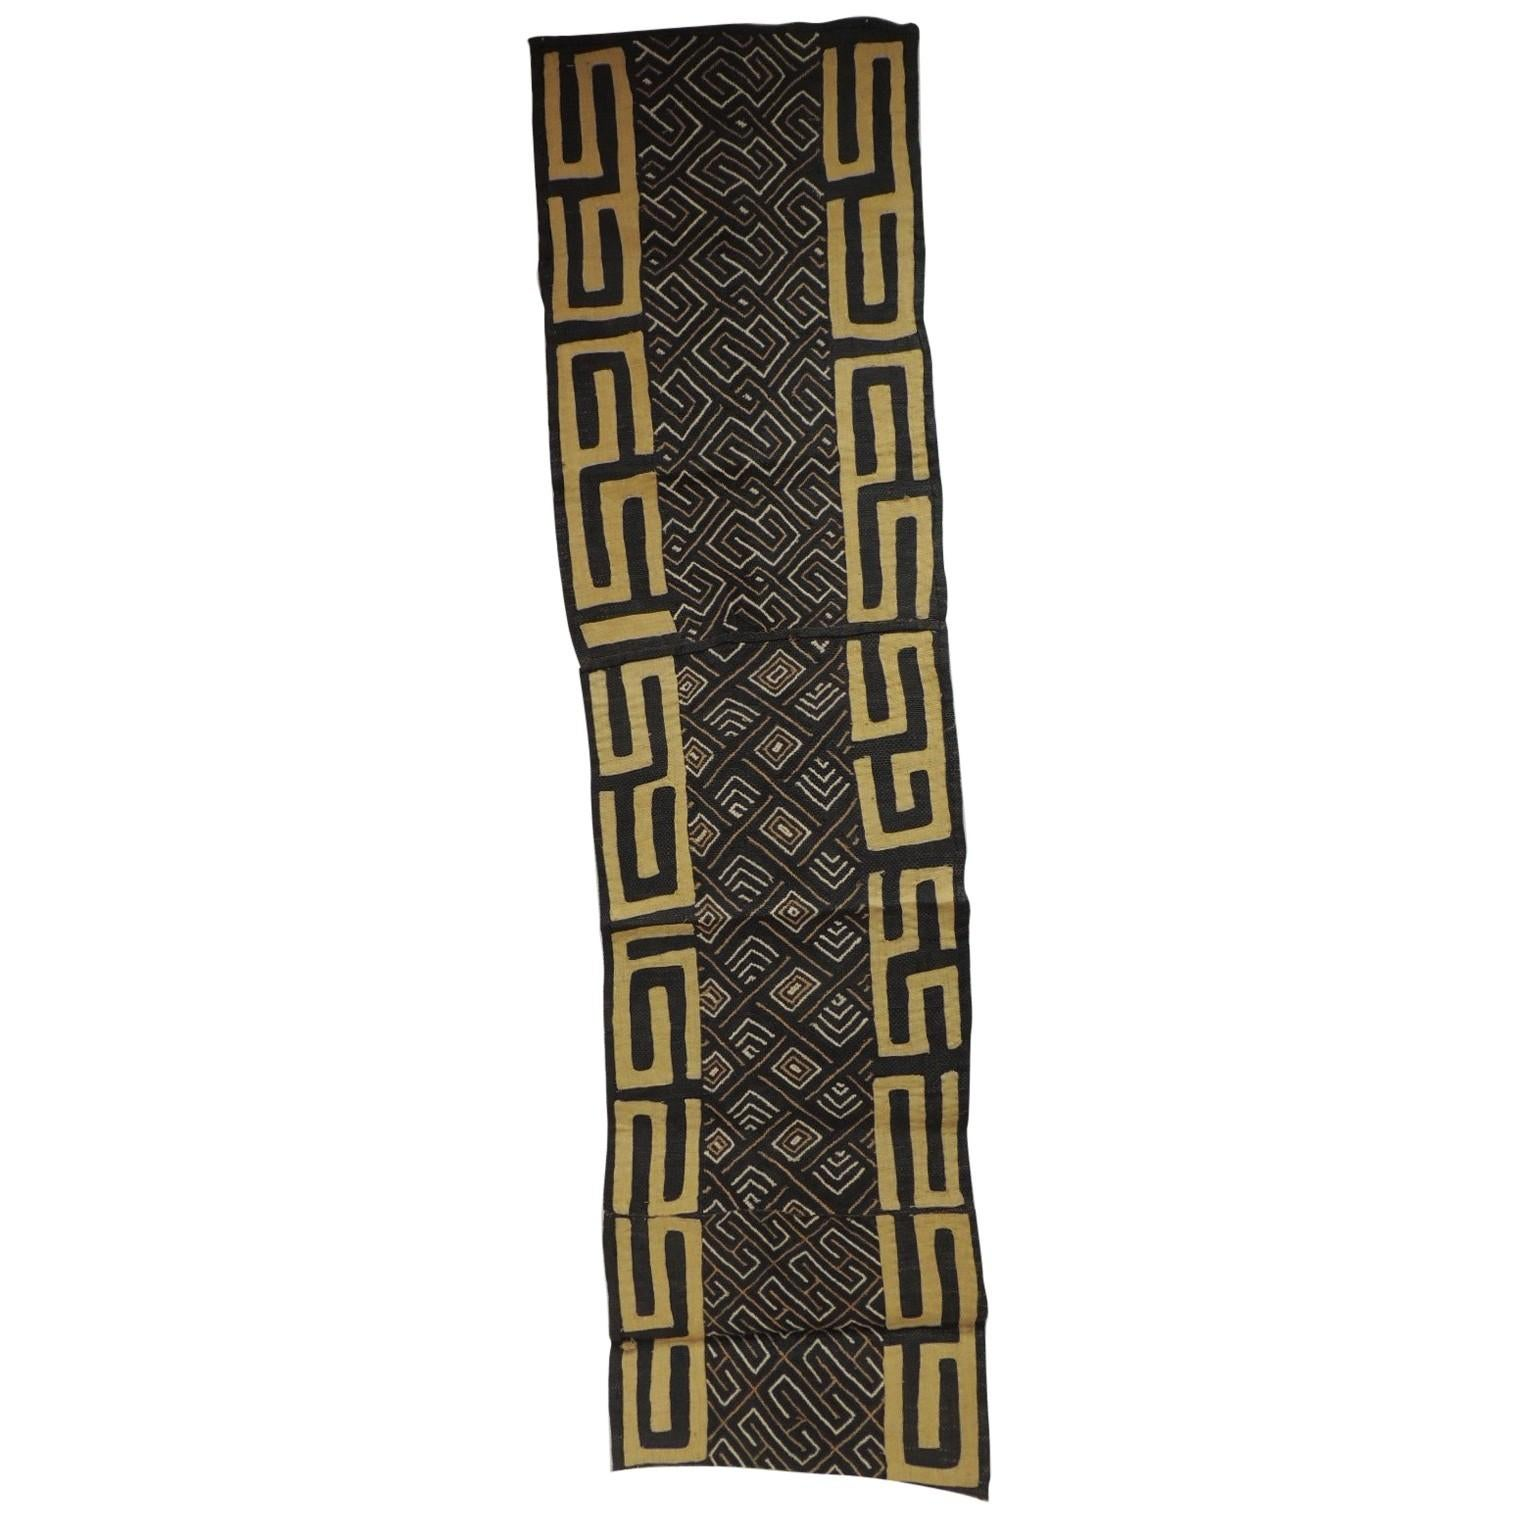 Vintage Yellow and Black African Applique Kuba Textile